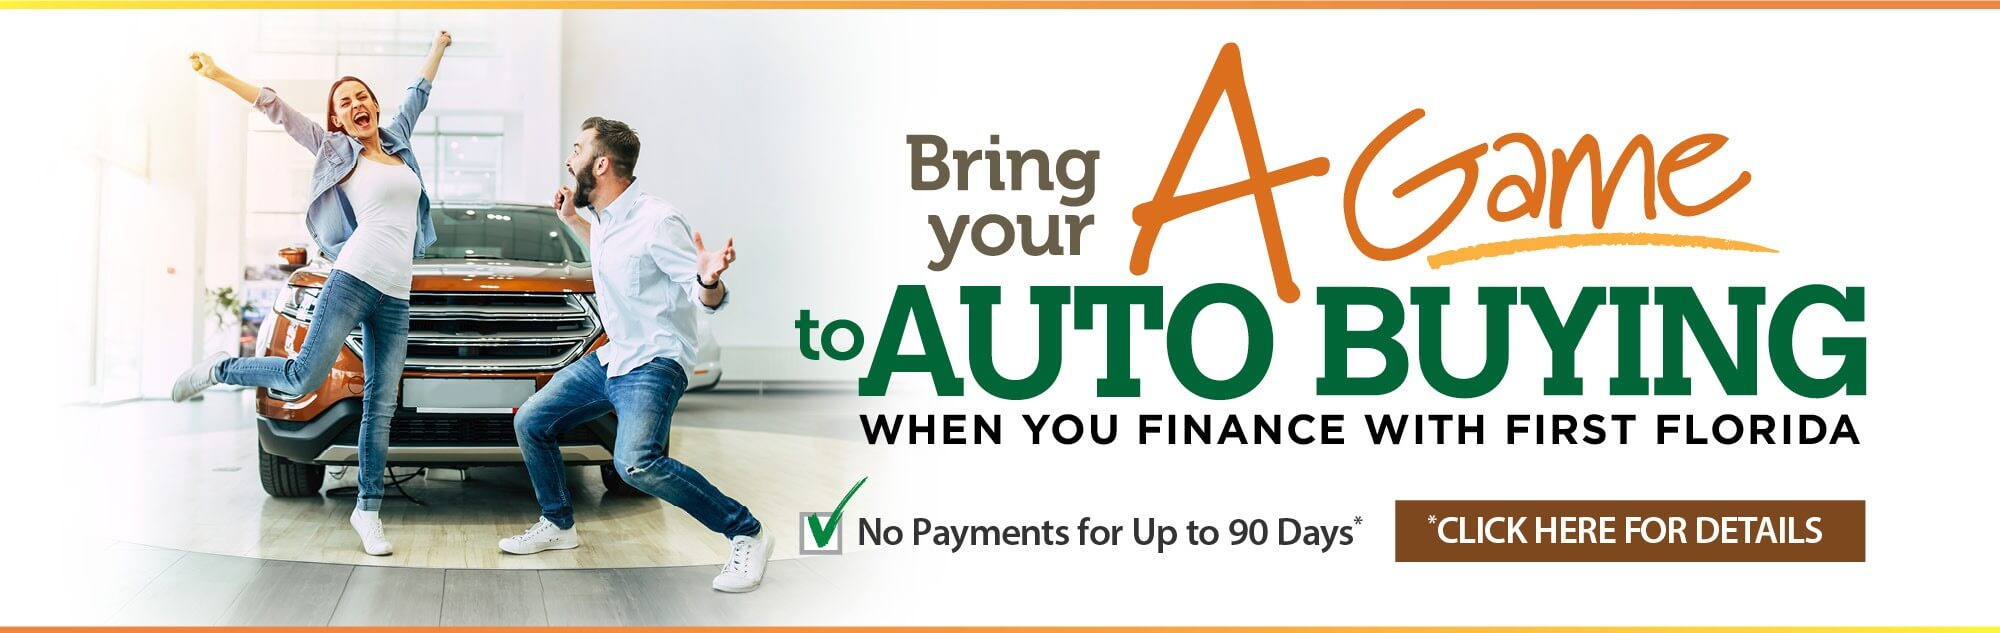 Bring your A game to auto buying when you finance with First Florida. Feel confident with an auto loan featuring no payment for up to 90 days*. Click for details.